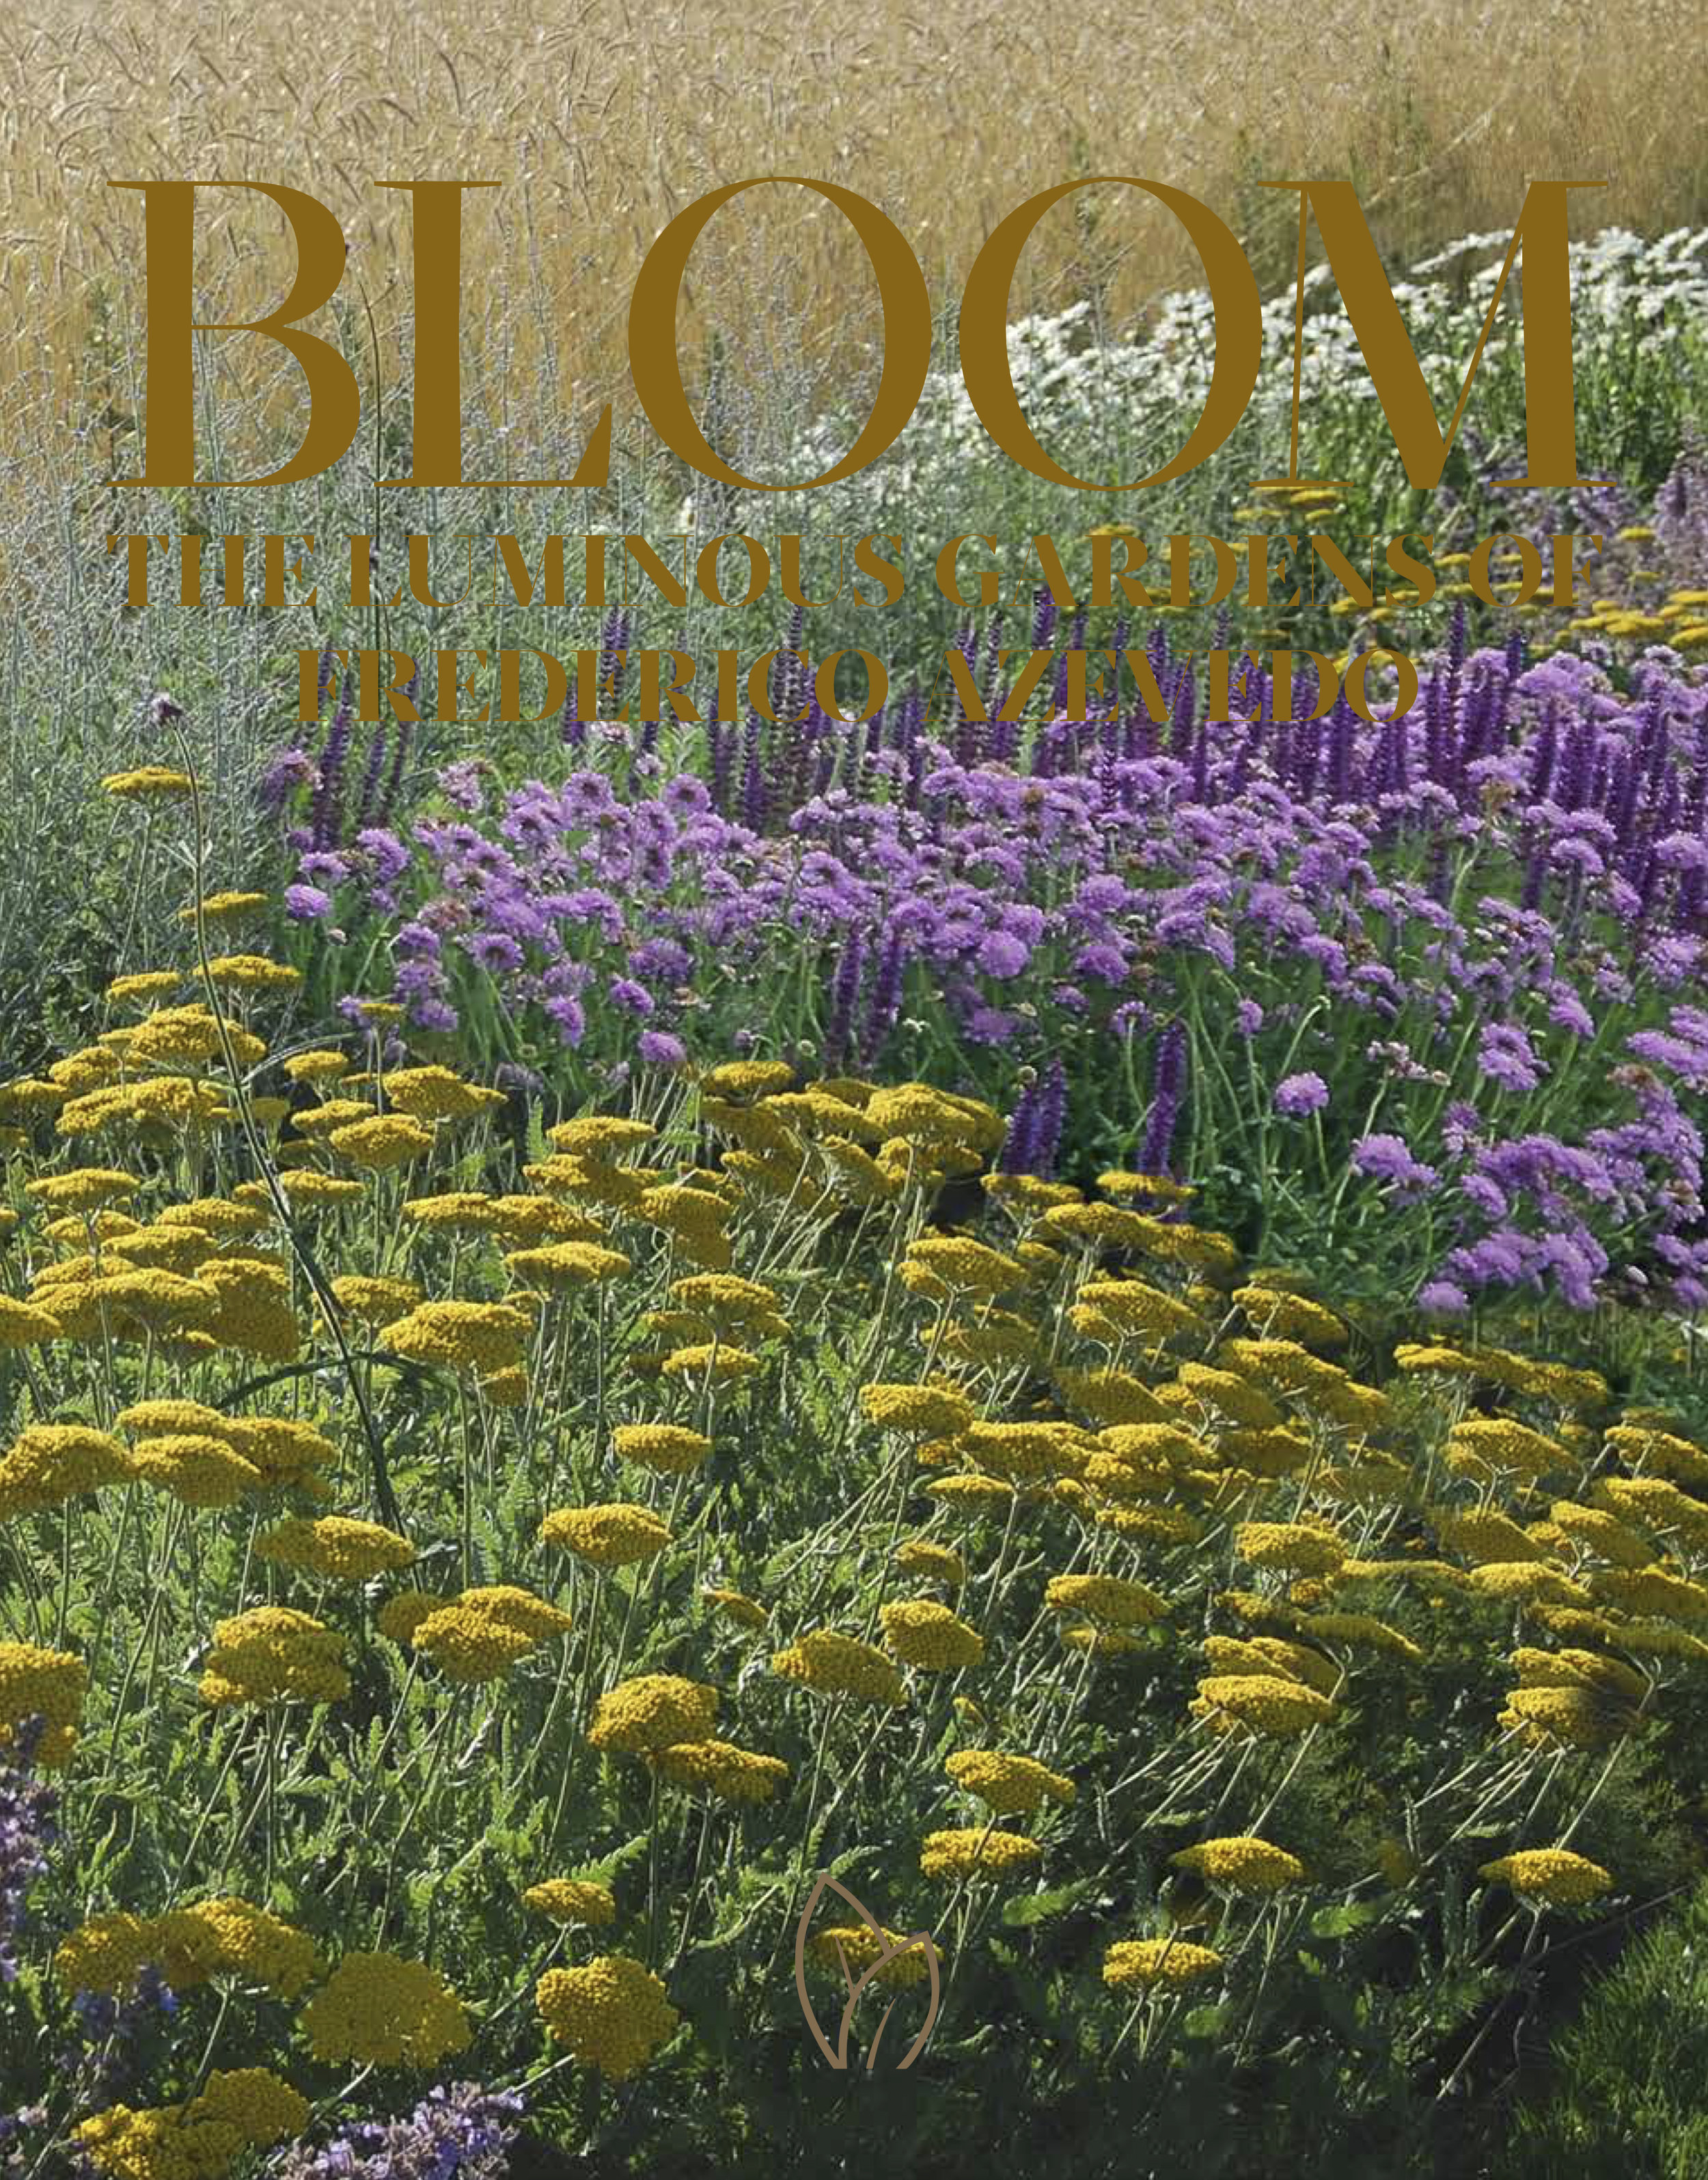 BLOOM_cover_Aug14_2019_HD.jpg